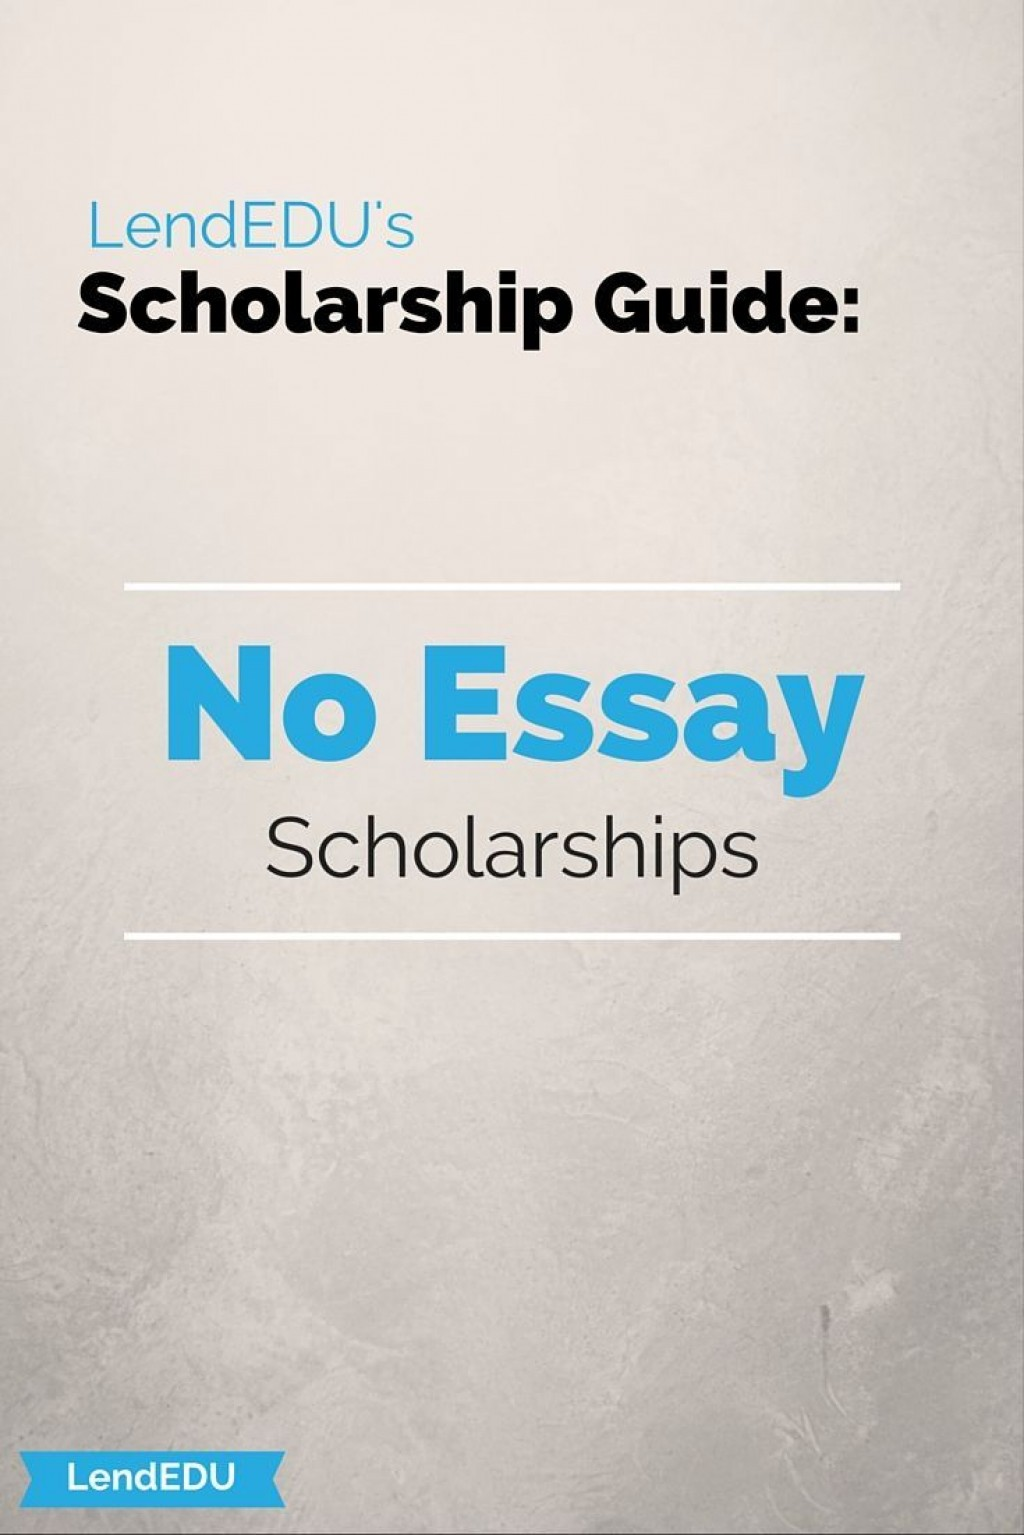 008 Essay Example No Scholarships Singular 2016 Large